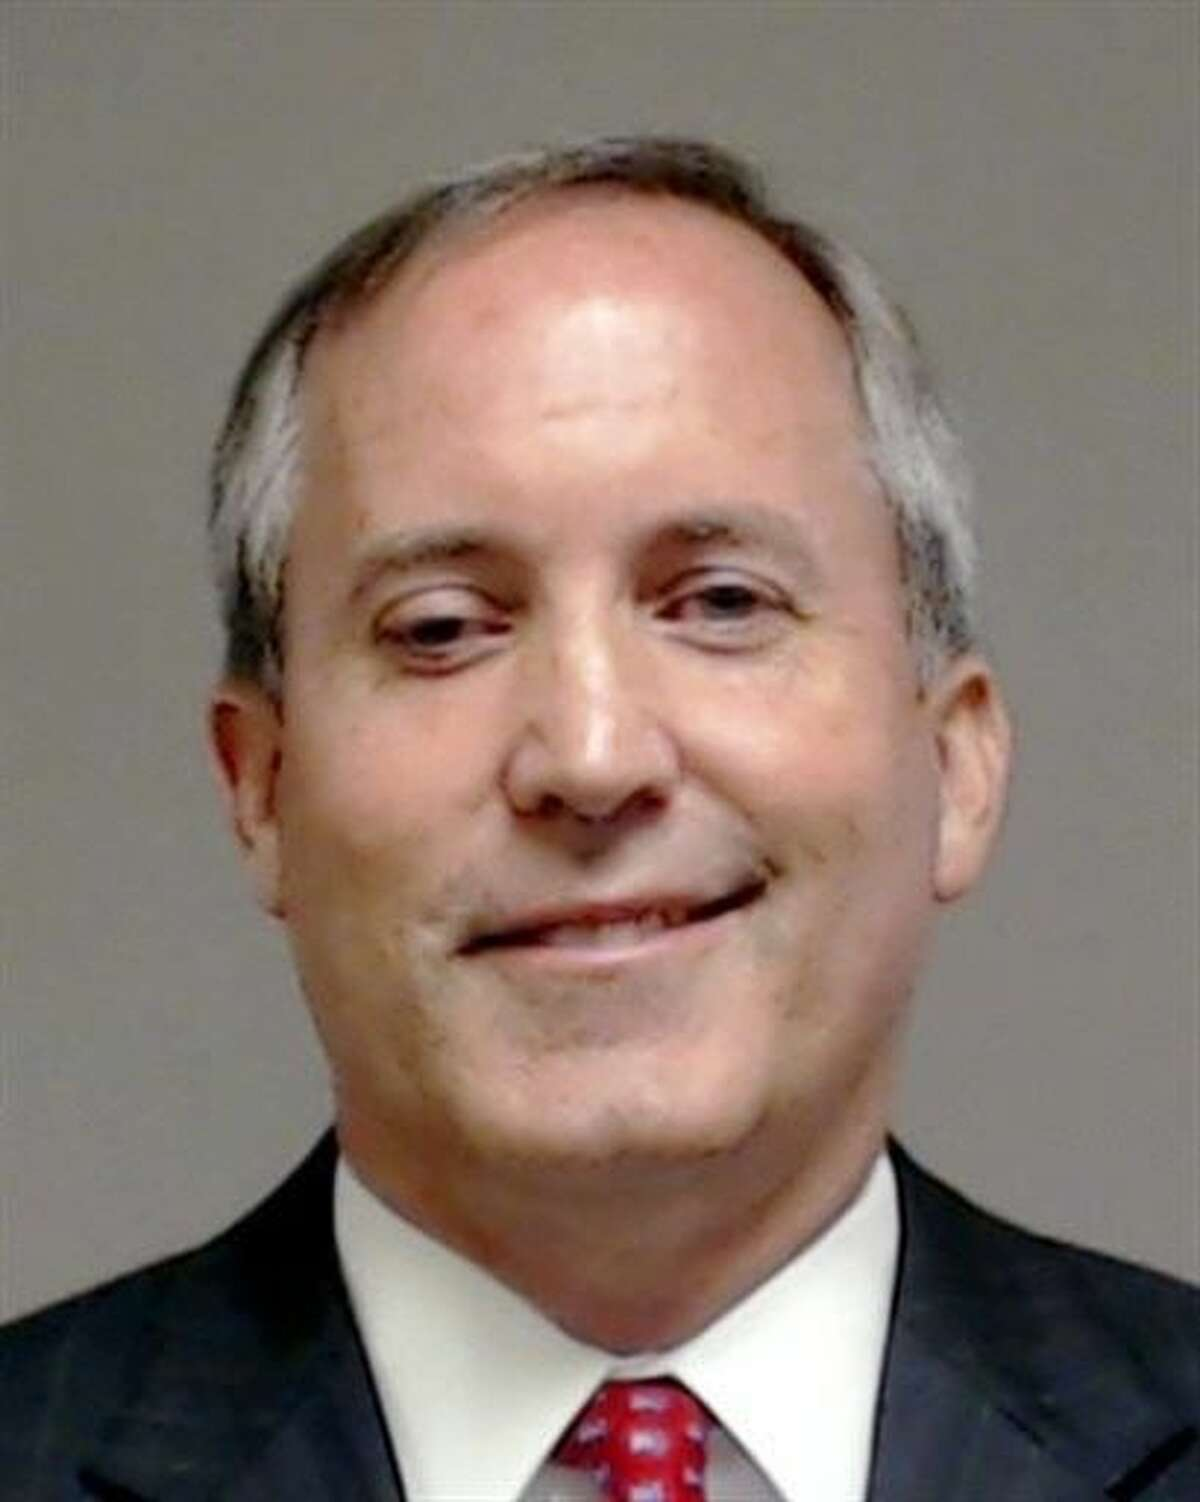 A grand jury last week indicted Texas Attorney General Ken Paxton on felony securities fraud charges.